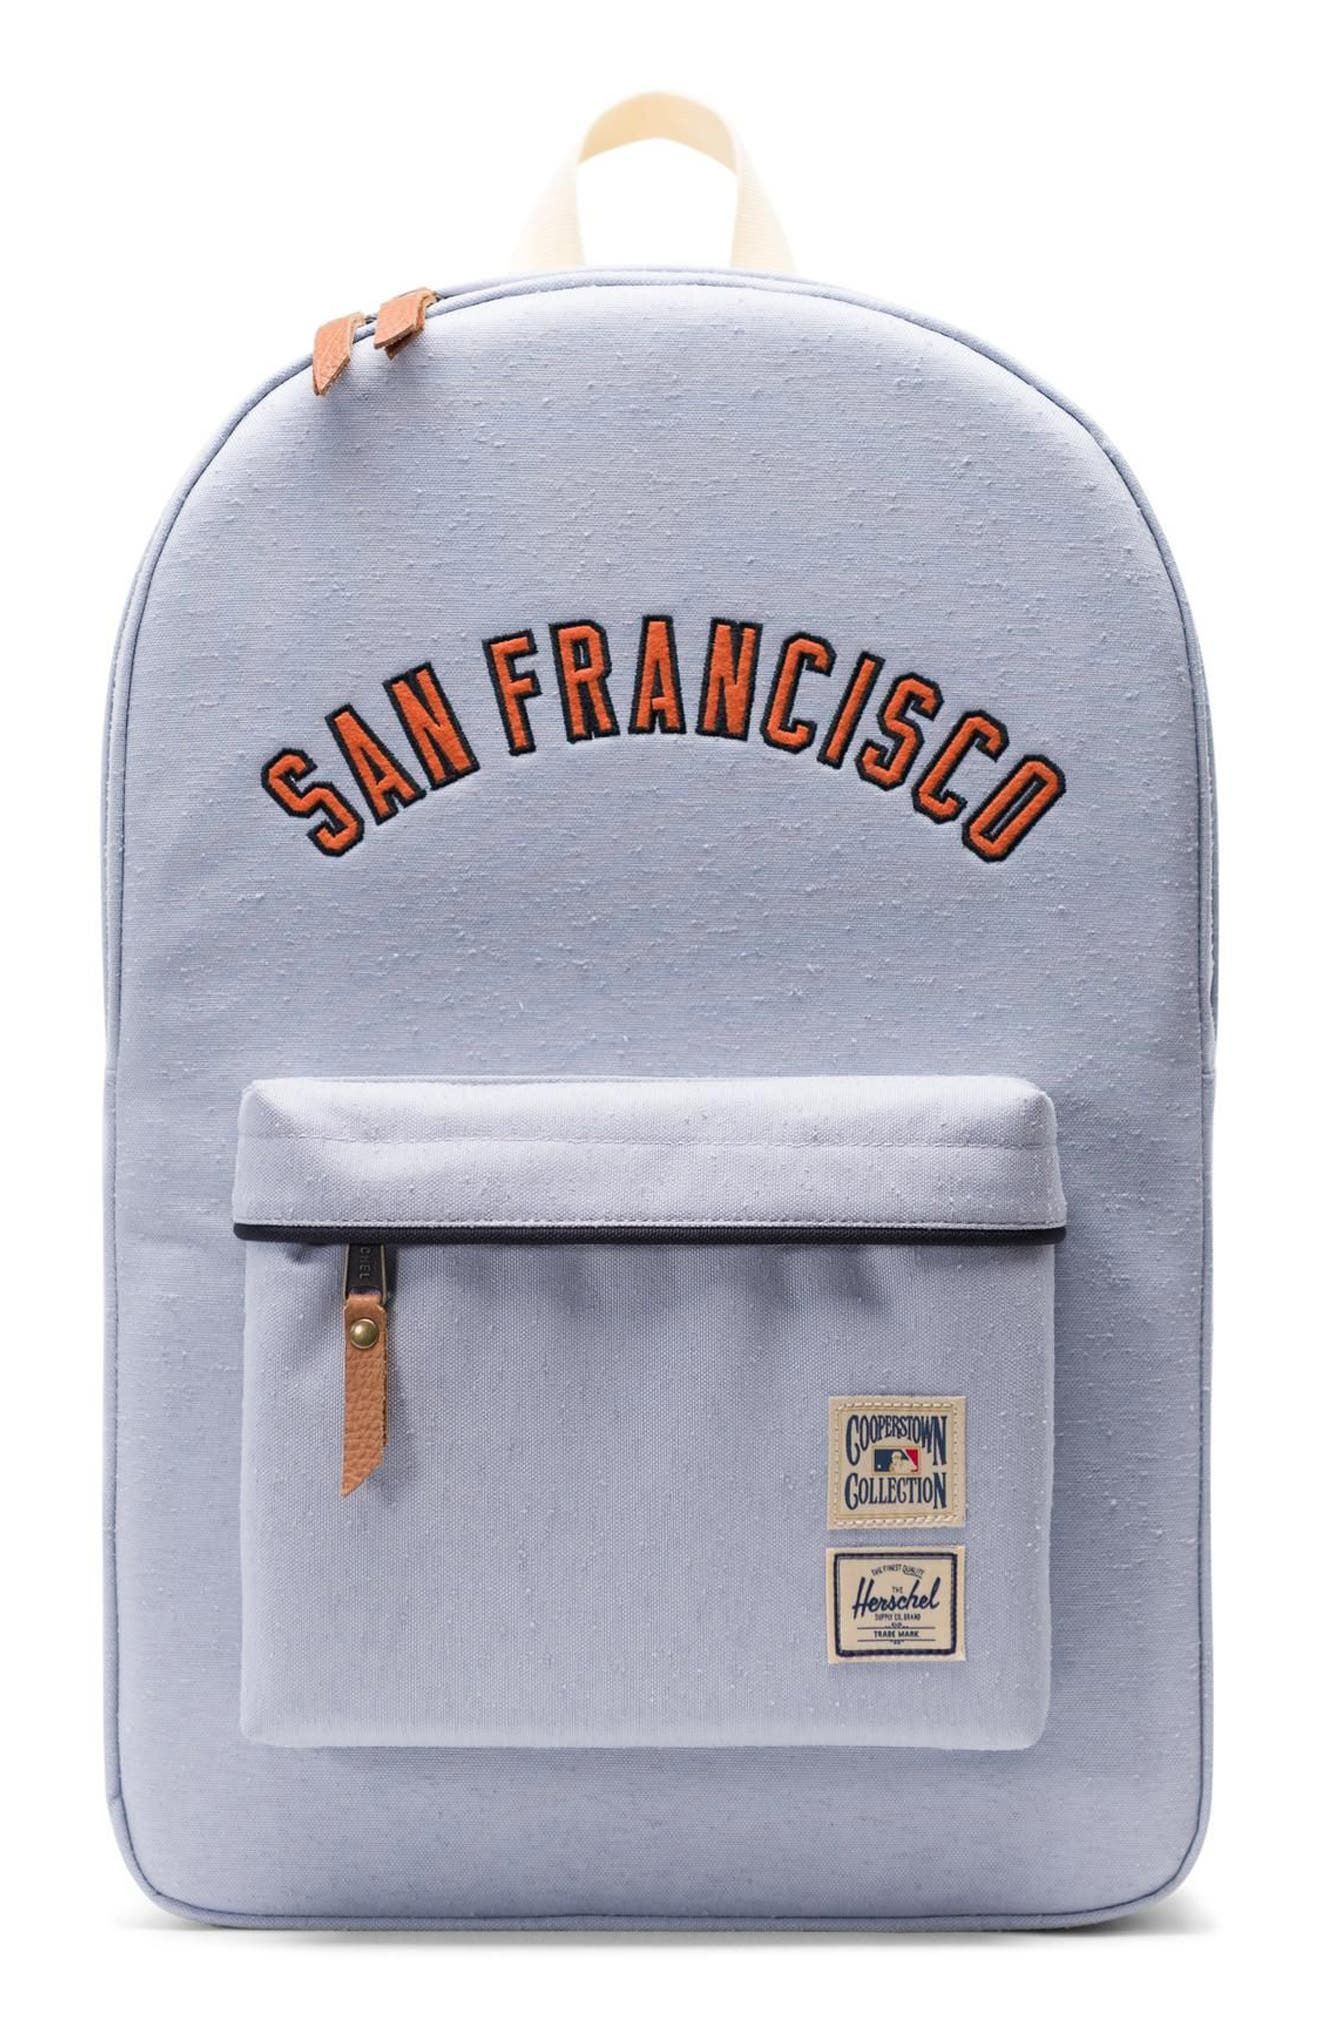 Heritage - MLB Cooperstown Collection Backpack,                             Main thumbnail 1, color,                             San Francisco Giants